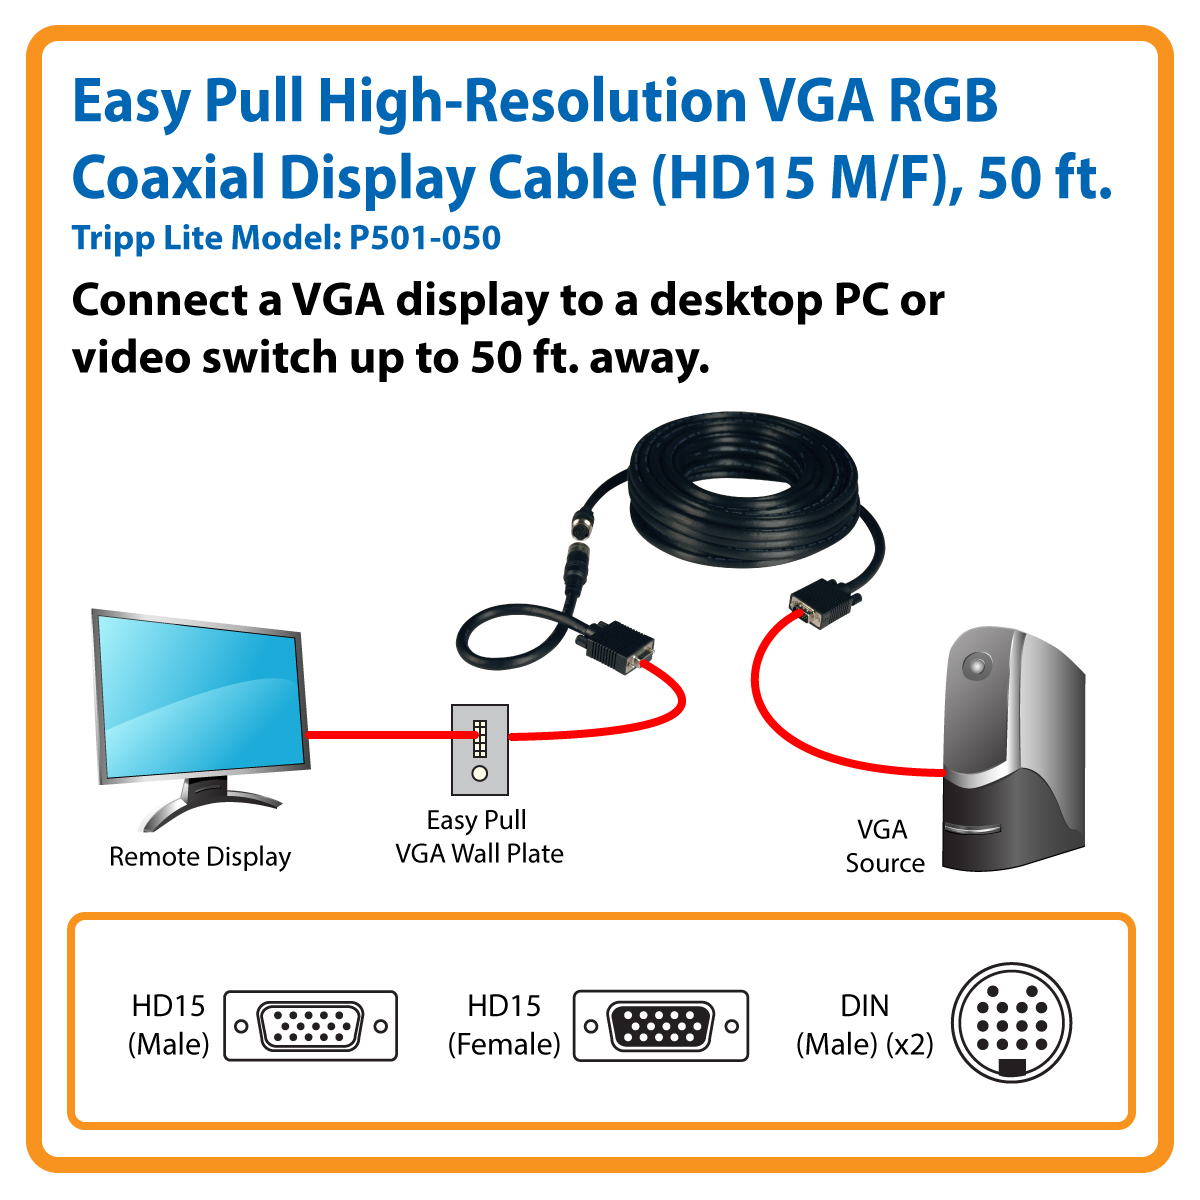 F Coax To Vga Wiring Diagram Electrical Diagrams Tripp Lite Easy Pull Monitor Extension Cable With Connectors Coaxial Hookup